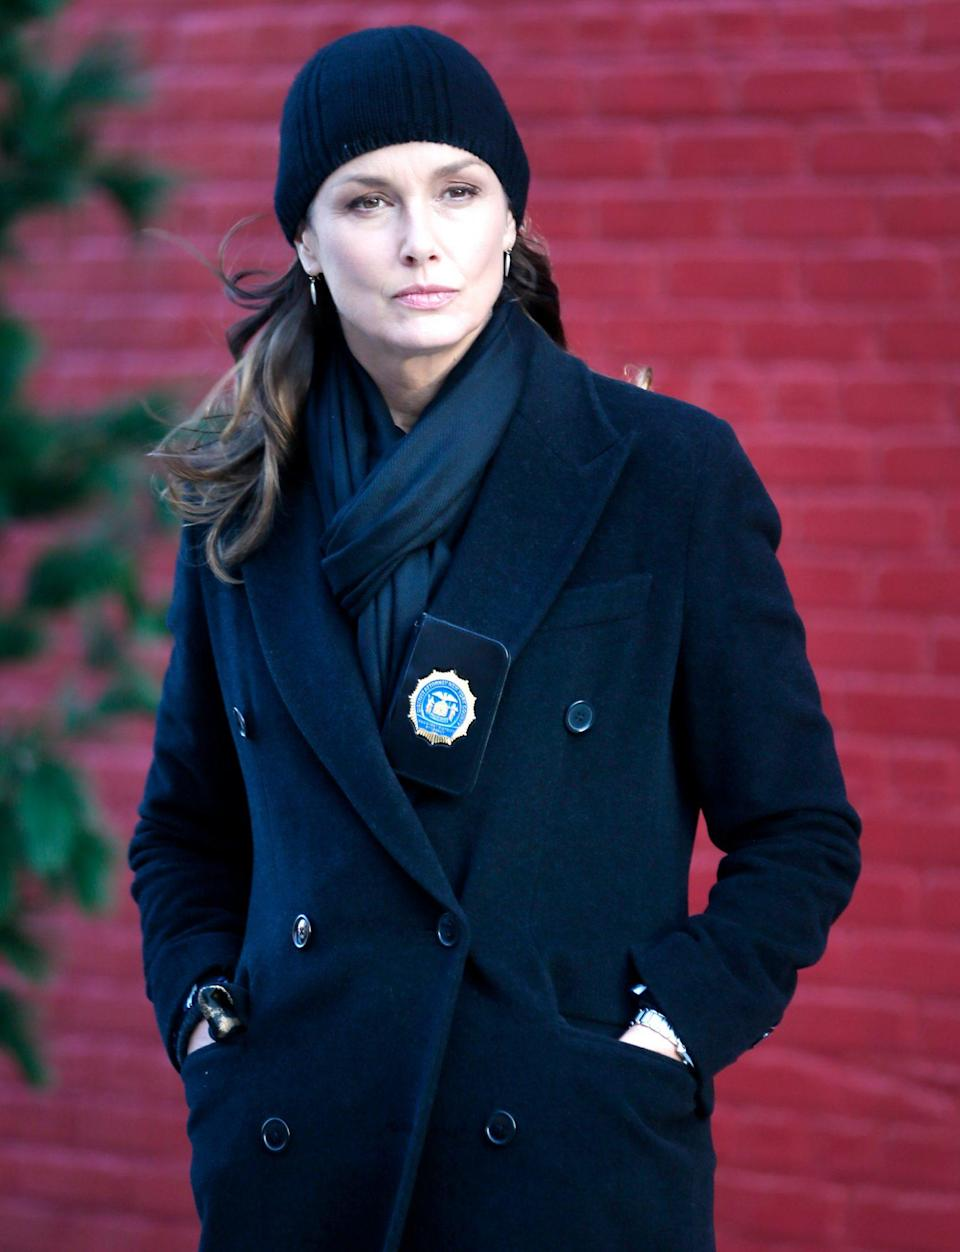 <p>Bridget Moynahan bundles up in a black jacket, scarf and beanie as she films a scene for <i>Blue Bloods </i>in N.Y.C. on Wednesday. </p>